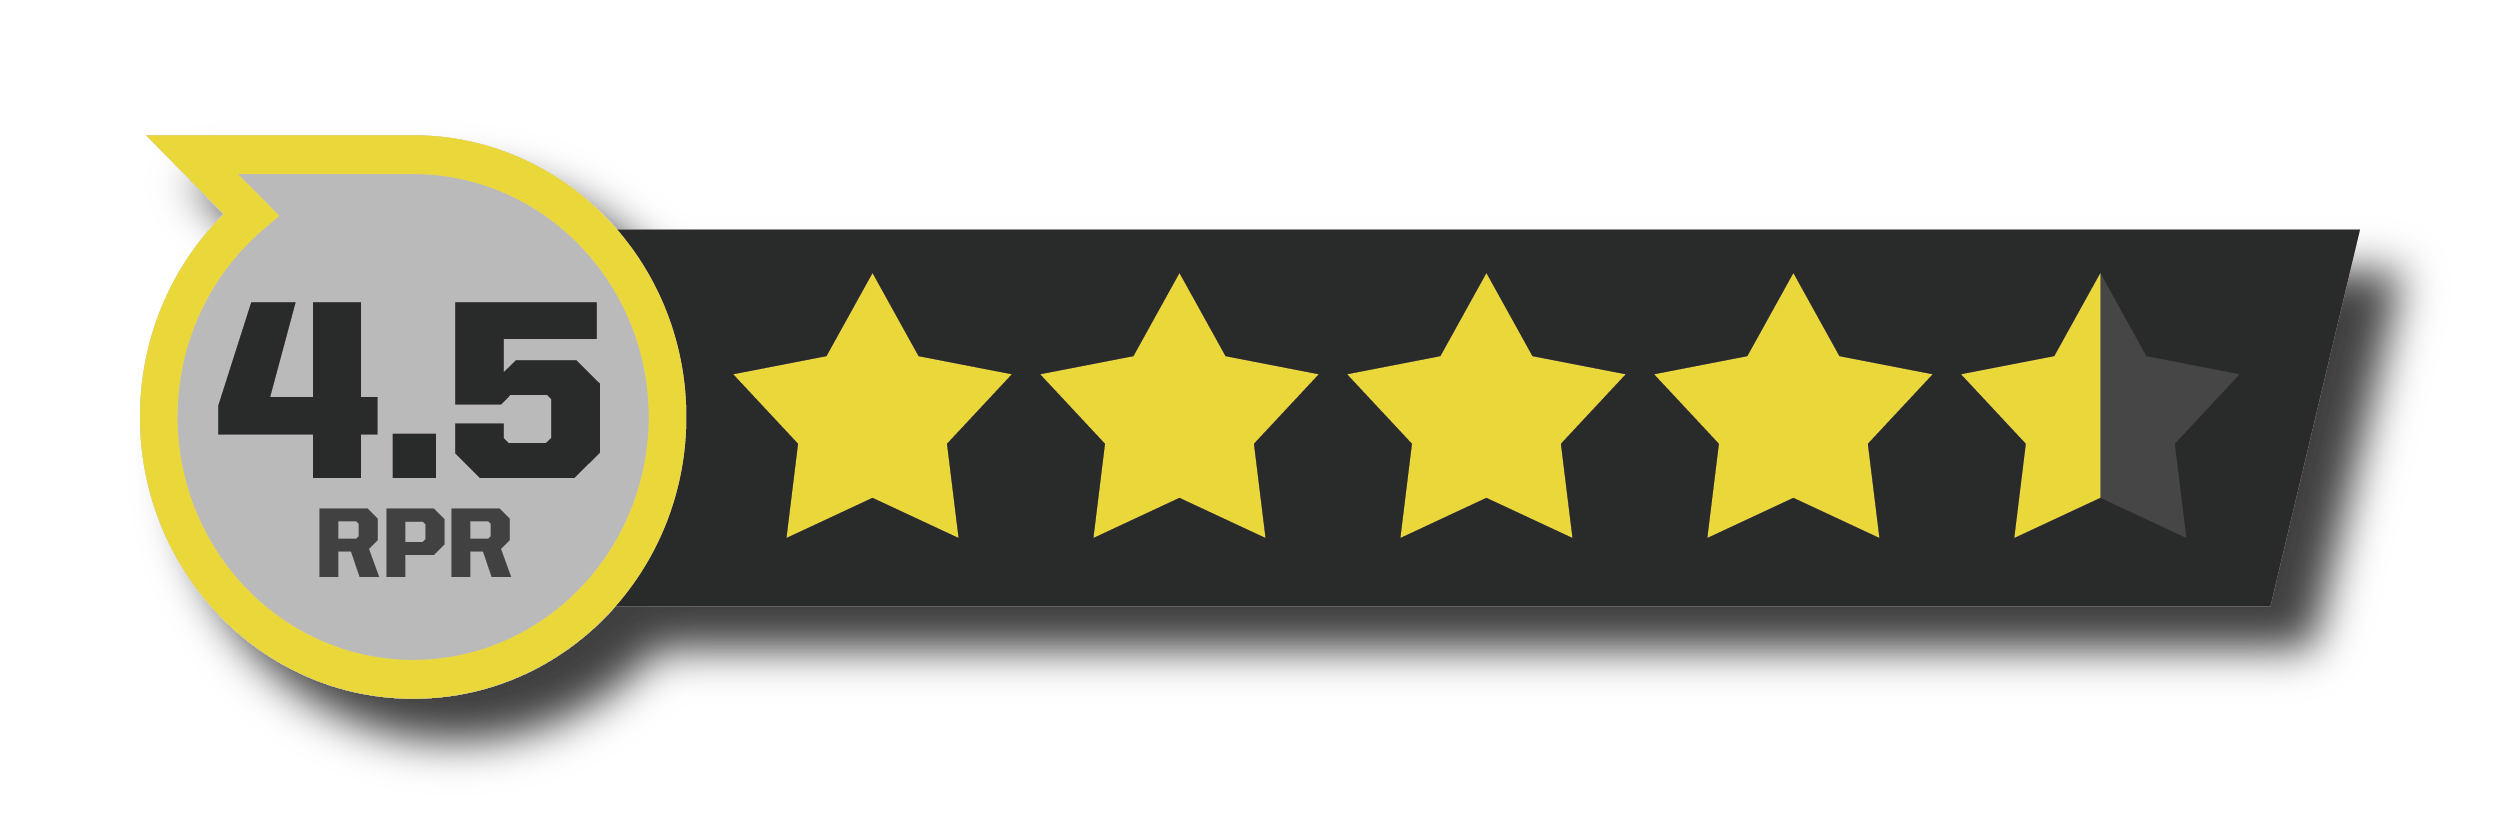 Roundnet Player Rating | Spikeball Store